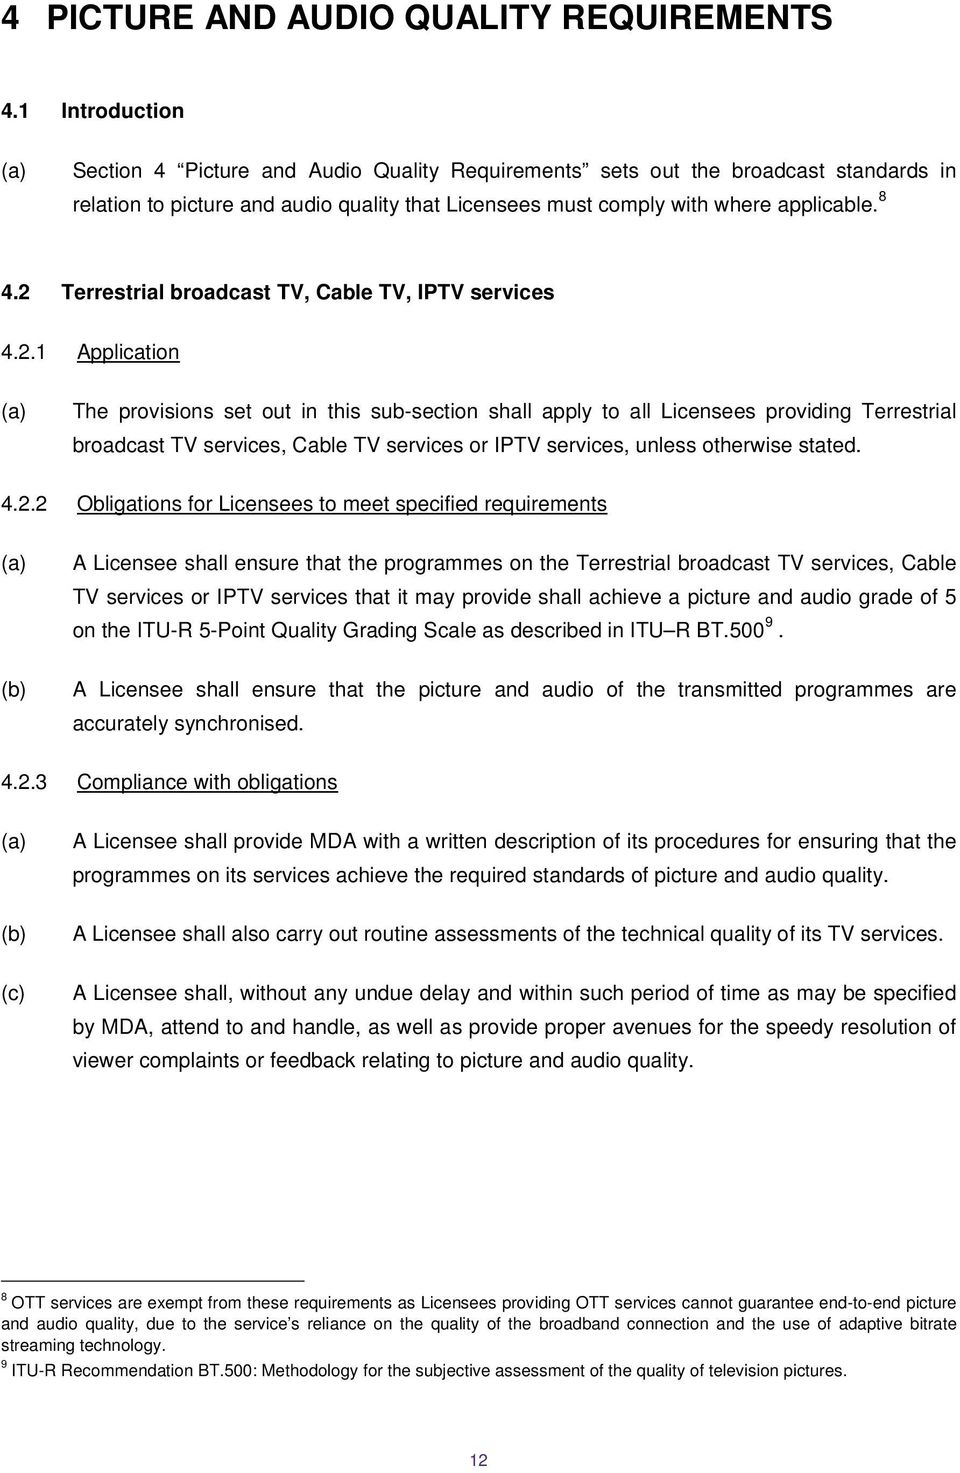 2 Terrestrial broadcast TV, Cable TV, IPTV services 4.2.1 Application The provisions set out in this sub-section shall apply to all Licensees providing Terrestrial broadcast TV services, Cable TV services or IPTV services, unless otherwise stated.